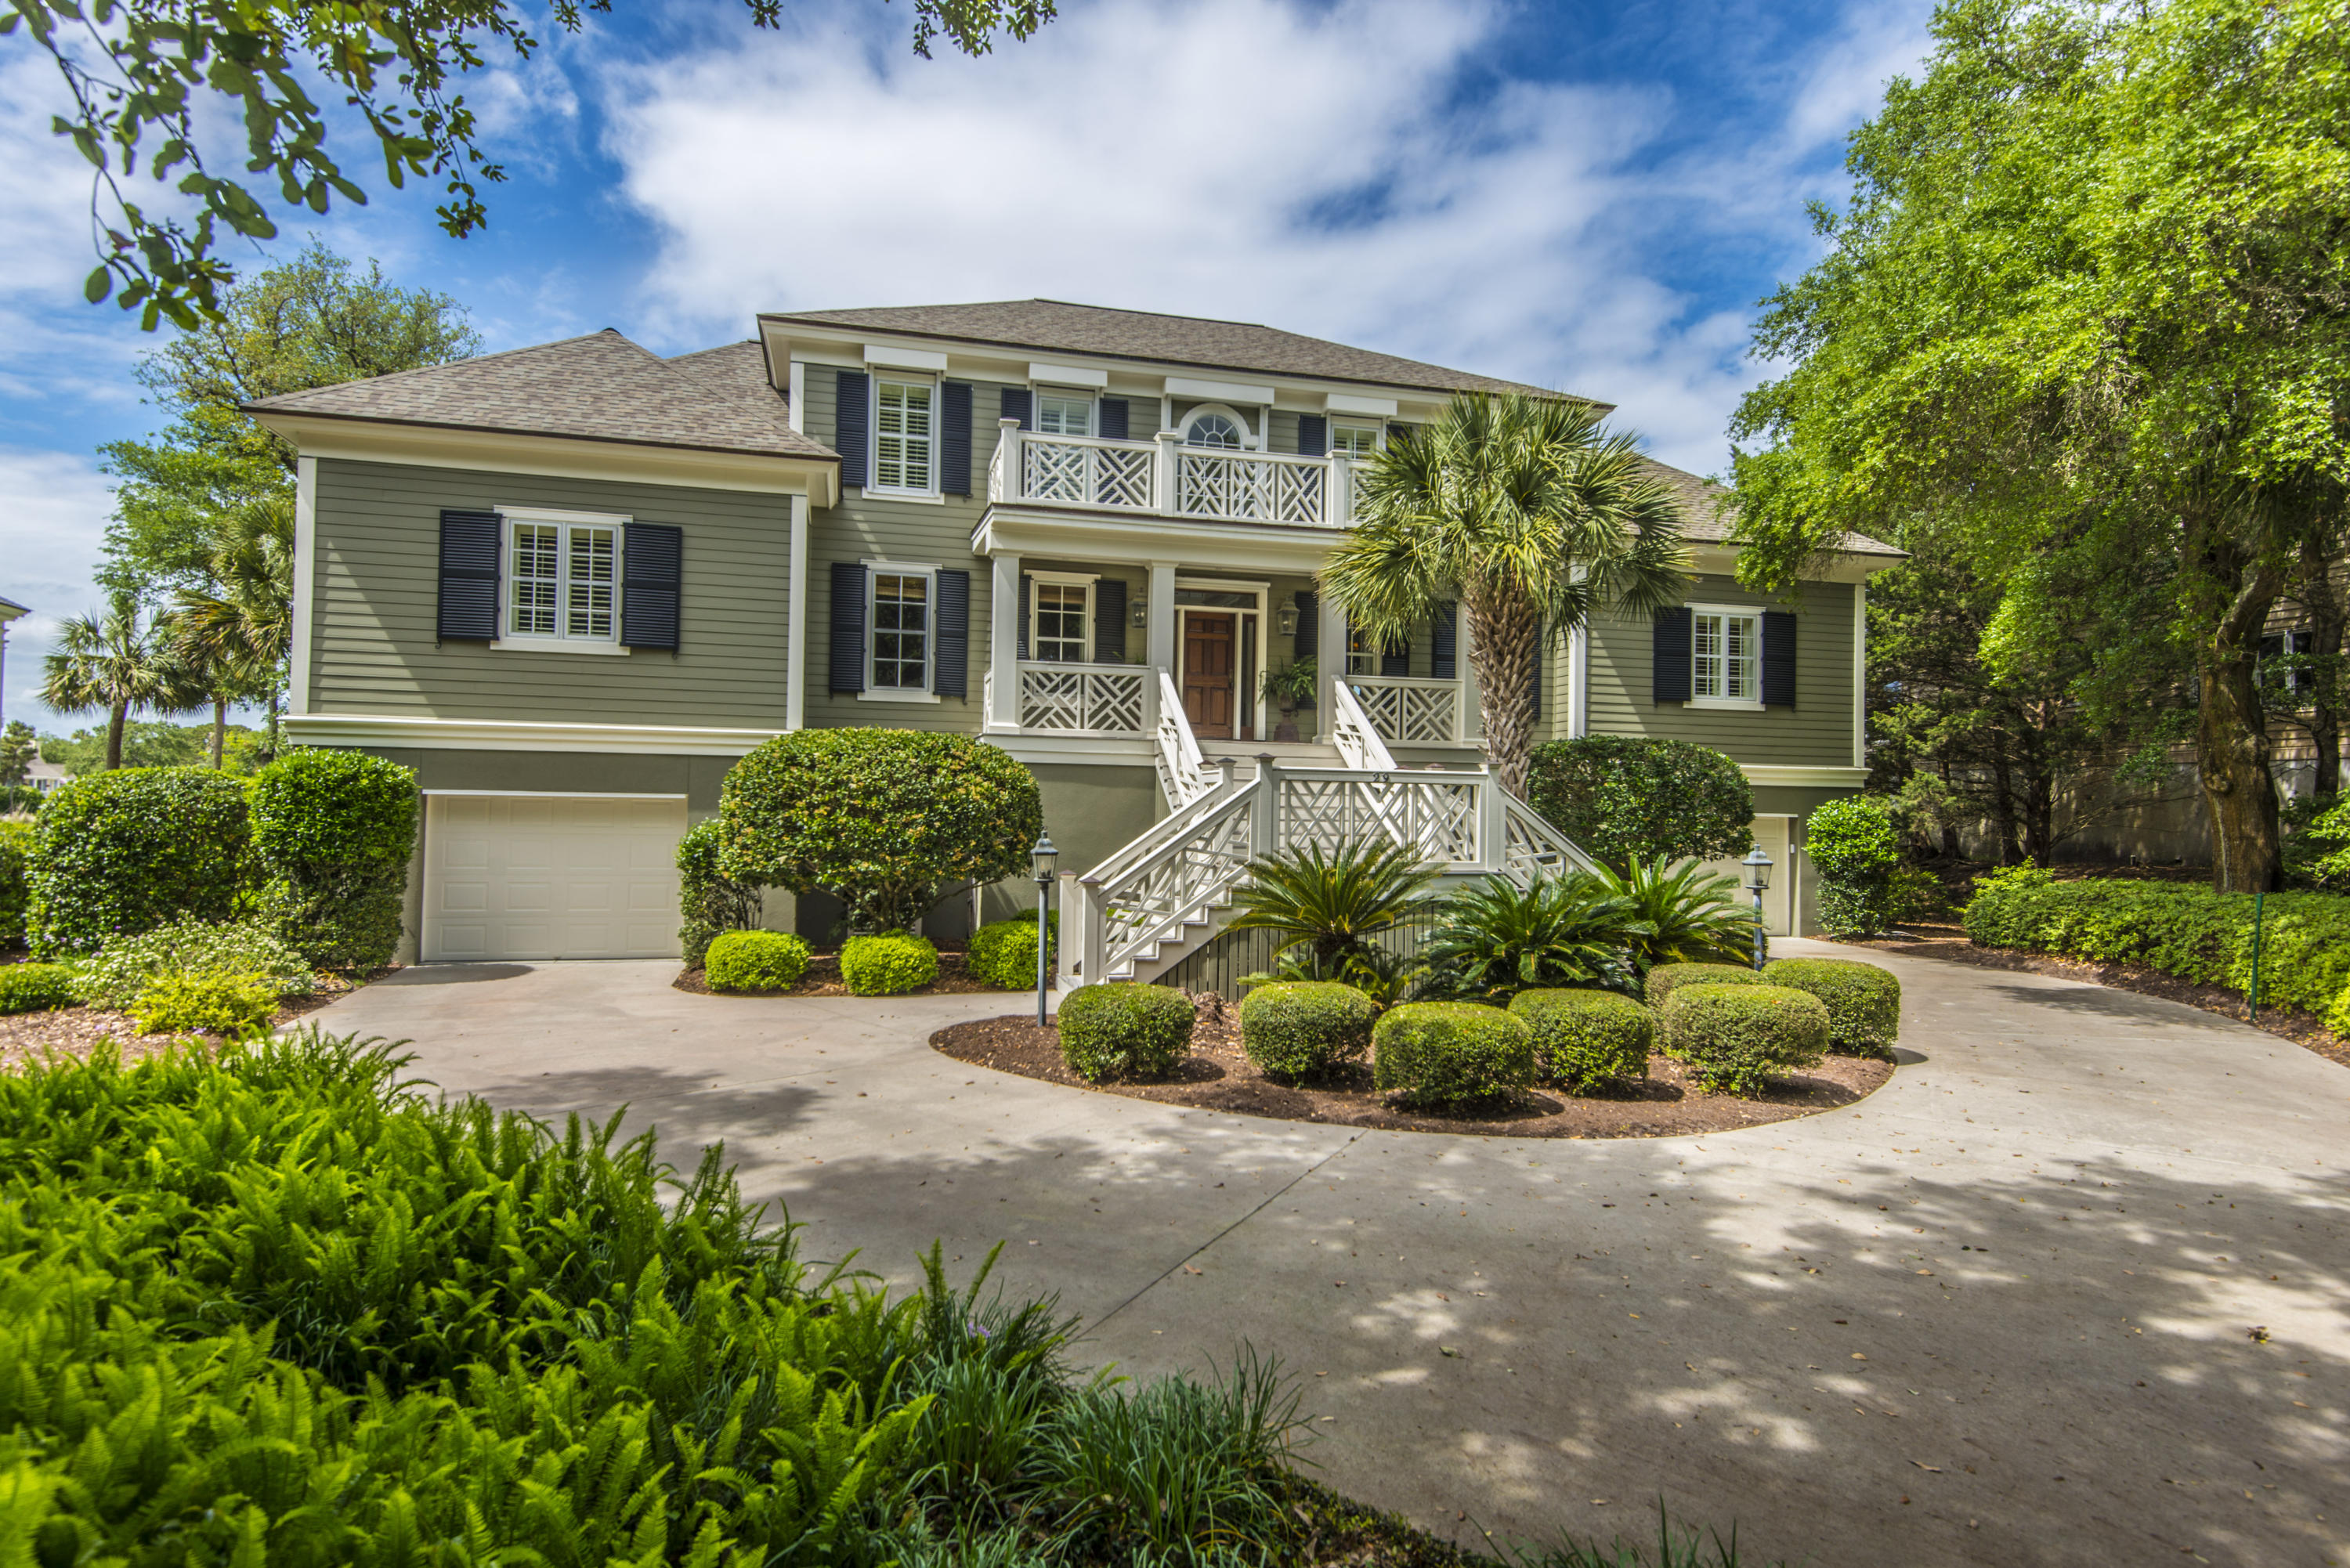 29 Dune Ridge Lane Isle of Palms $1,785,000.00